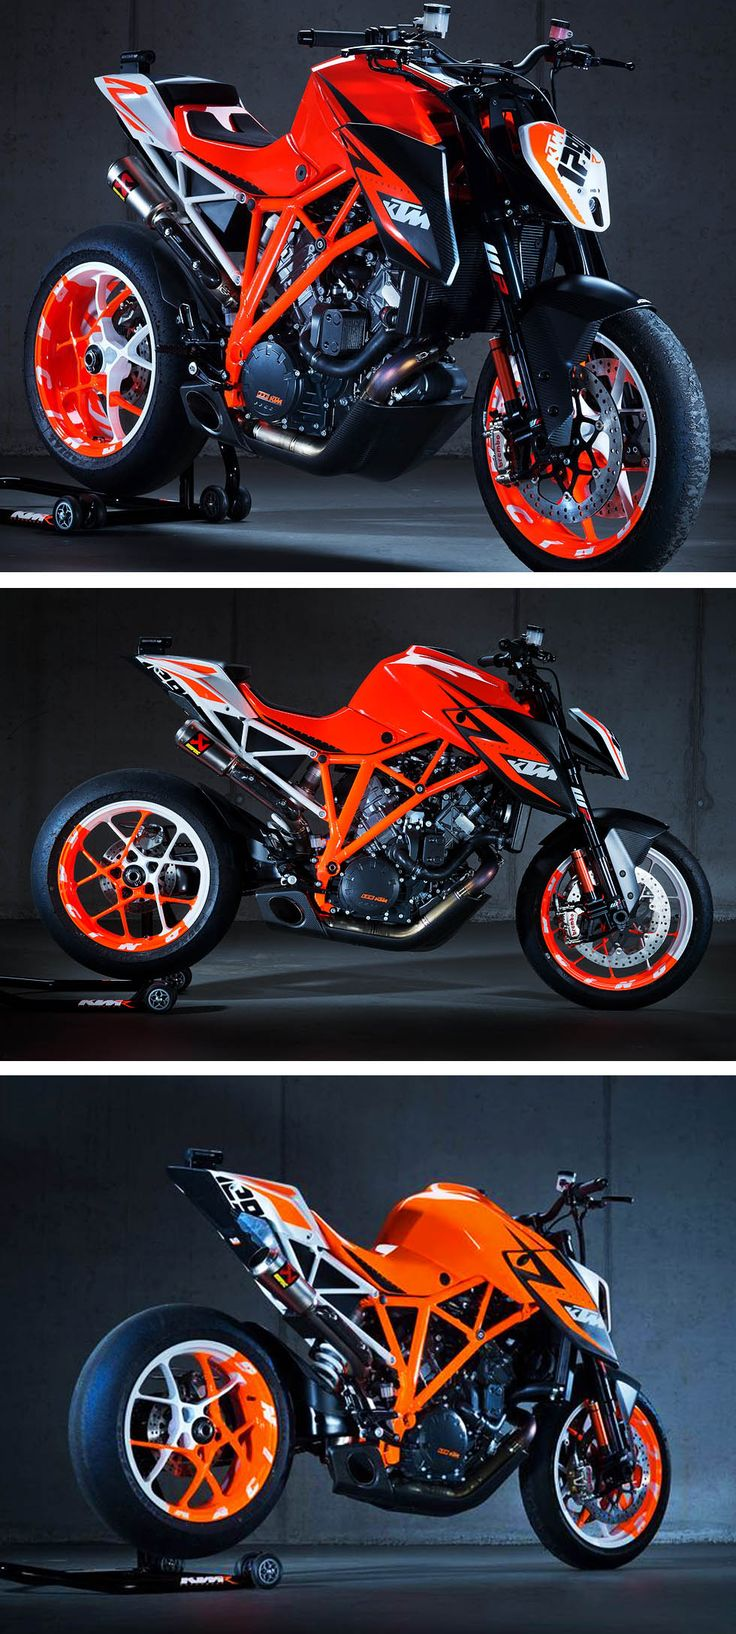 KTM Superduke 1290 - I will own one eventually!